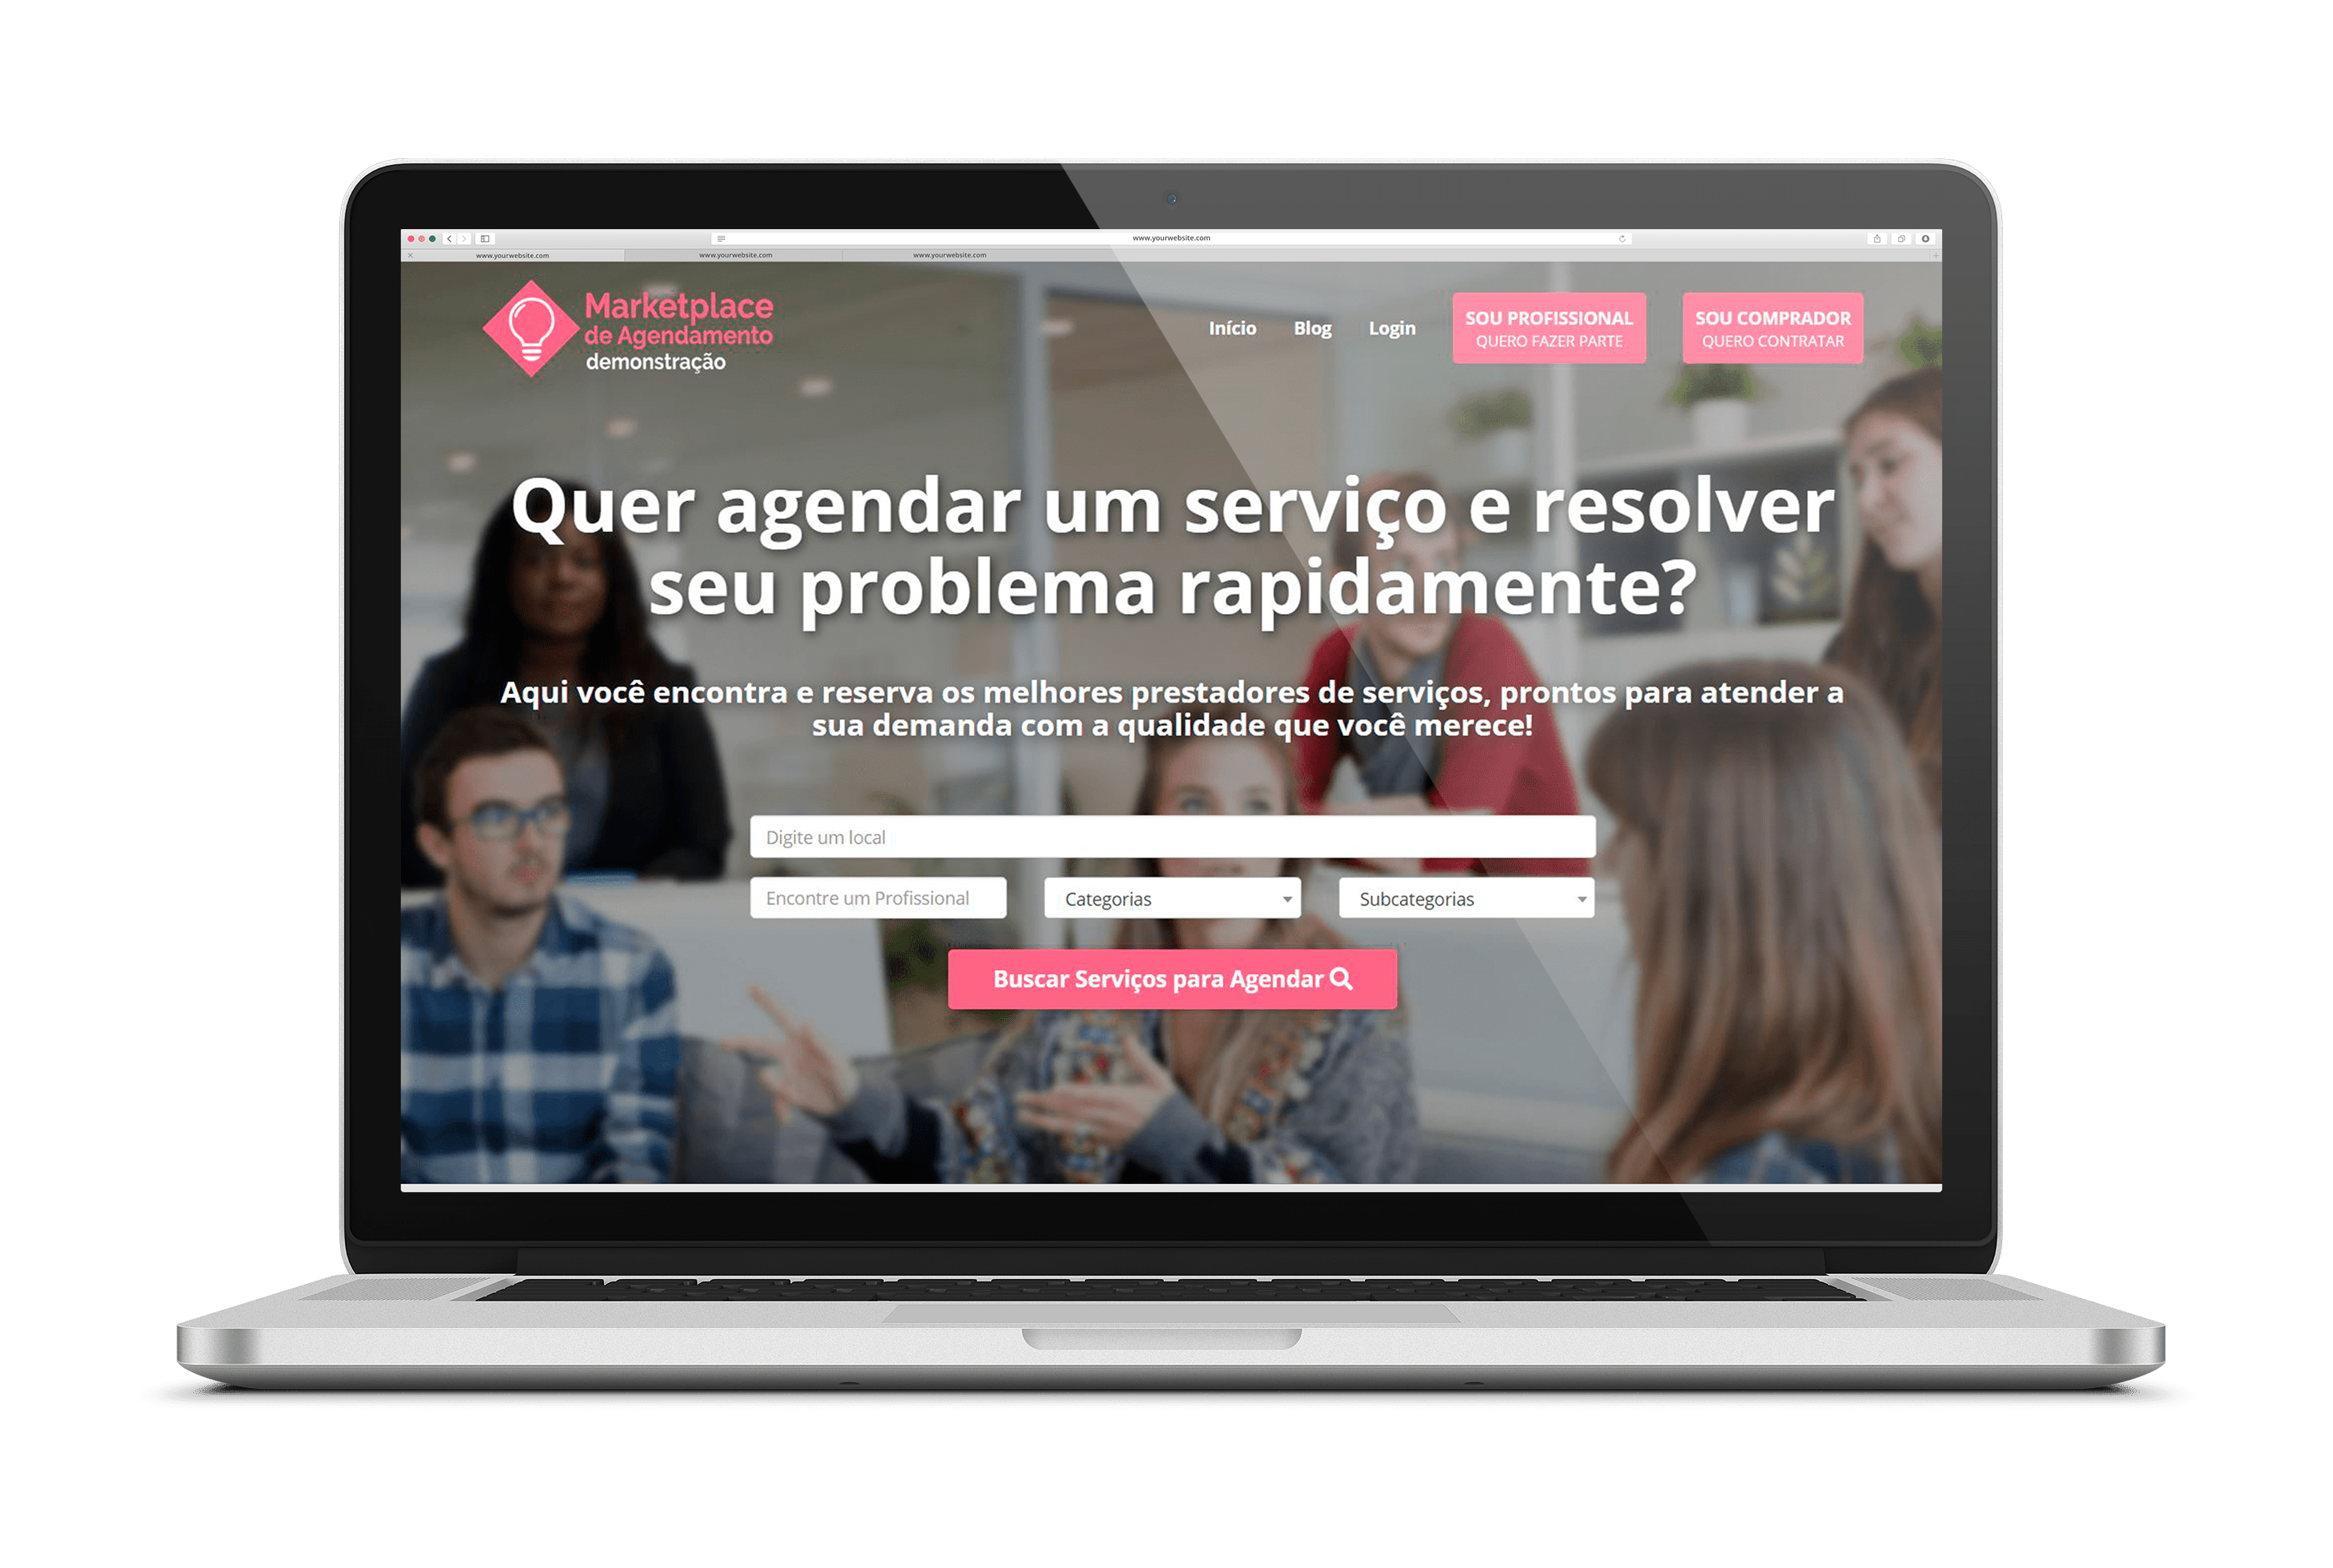 Marketplace_Agendamento